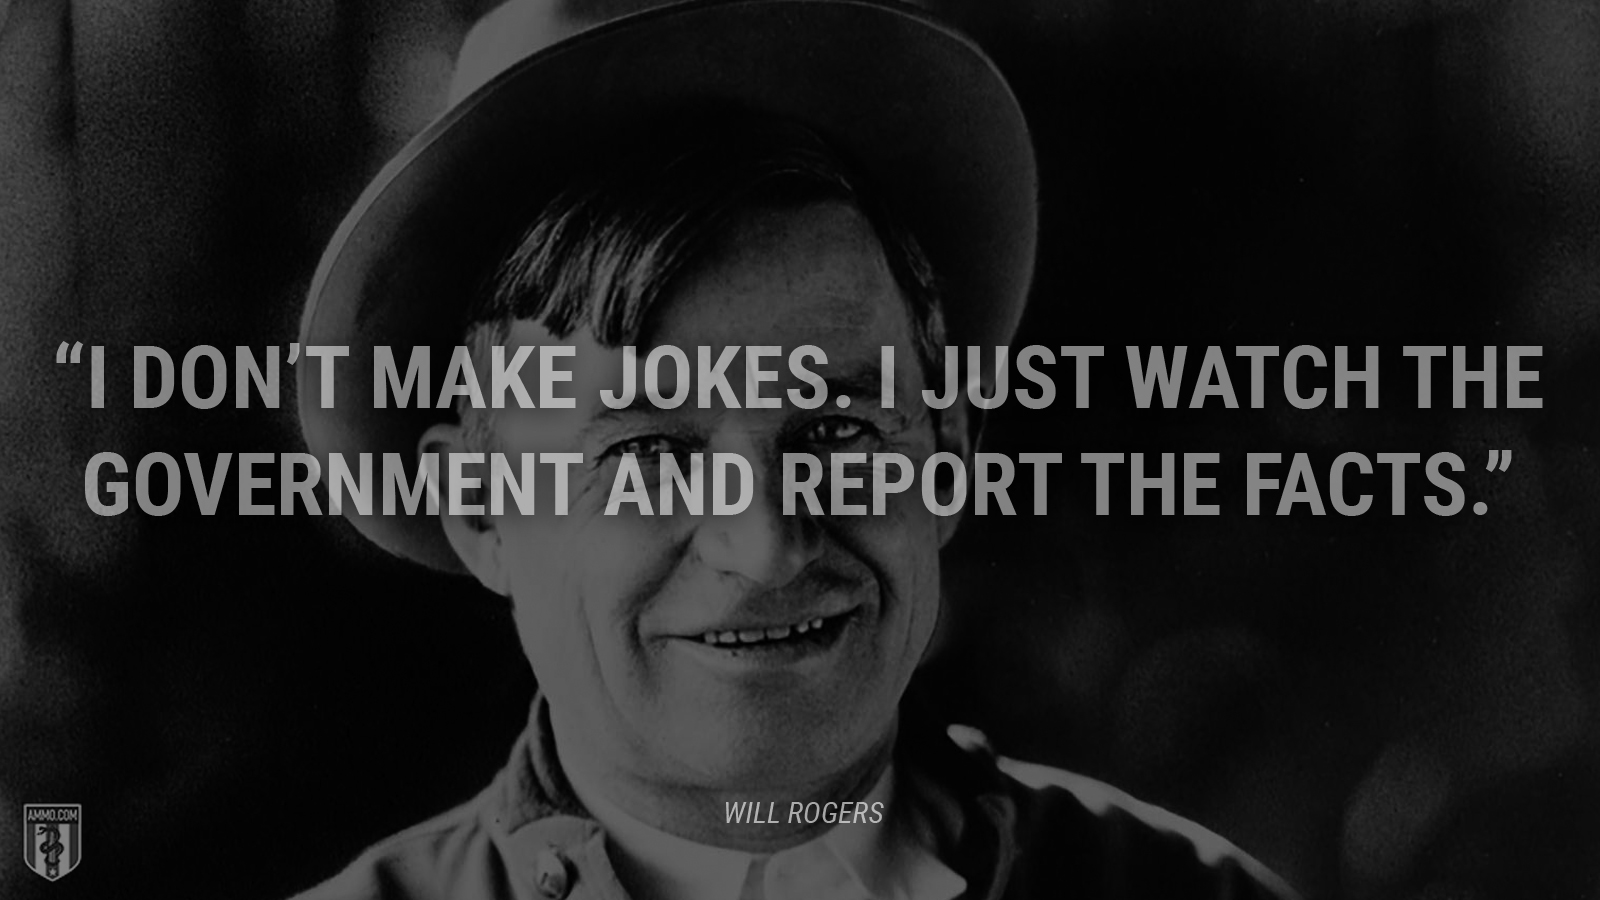 """I don't make jokes. I just watch the government and report the facts."" - Will Rogers"